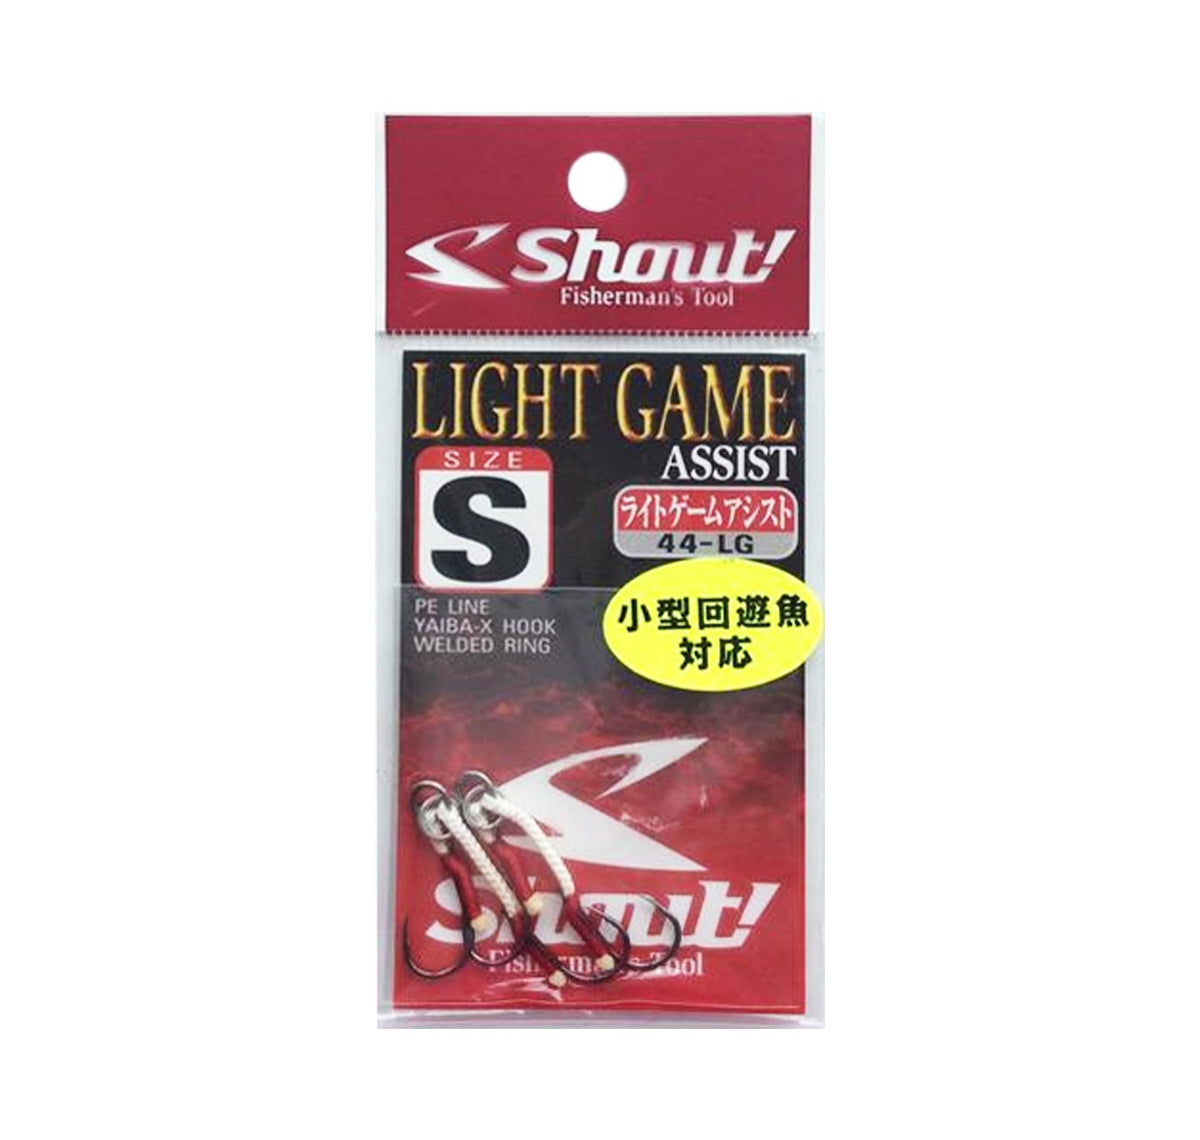 Shout Light Game Assist 44-LG Hooks